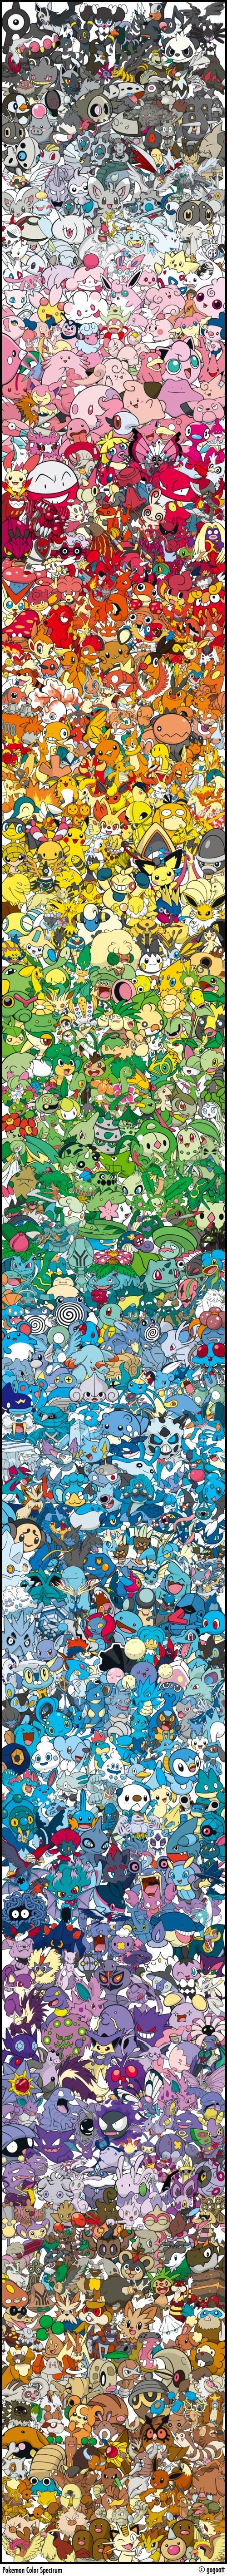 Pokémon,color,long image lol